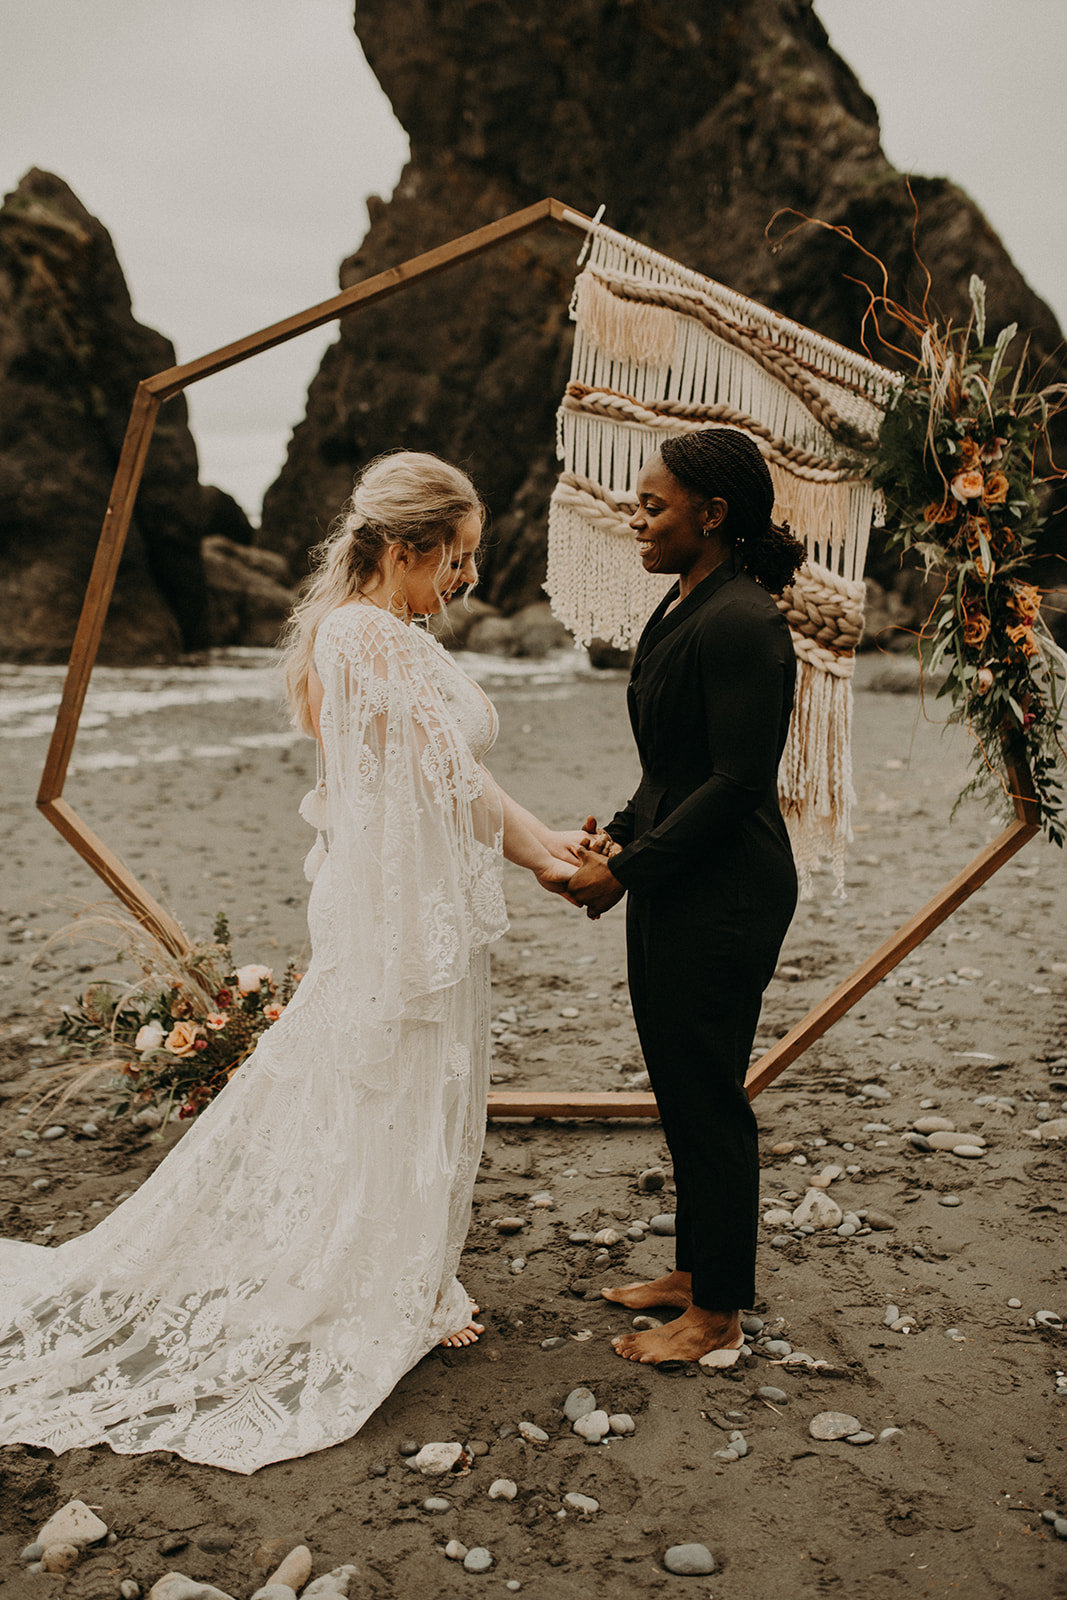 Ruby_Beach_Styled_Elopement_-_Run_Away_with_Me_Elopement_Collective_-_Kamra_Fuller_Photography_-_Ceremony-14